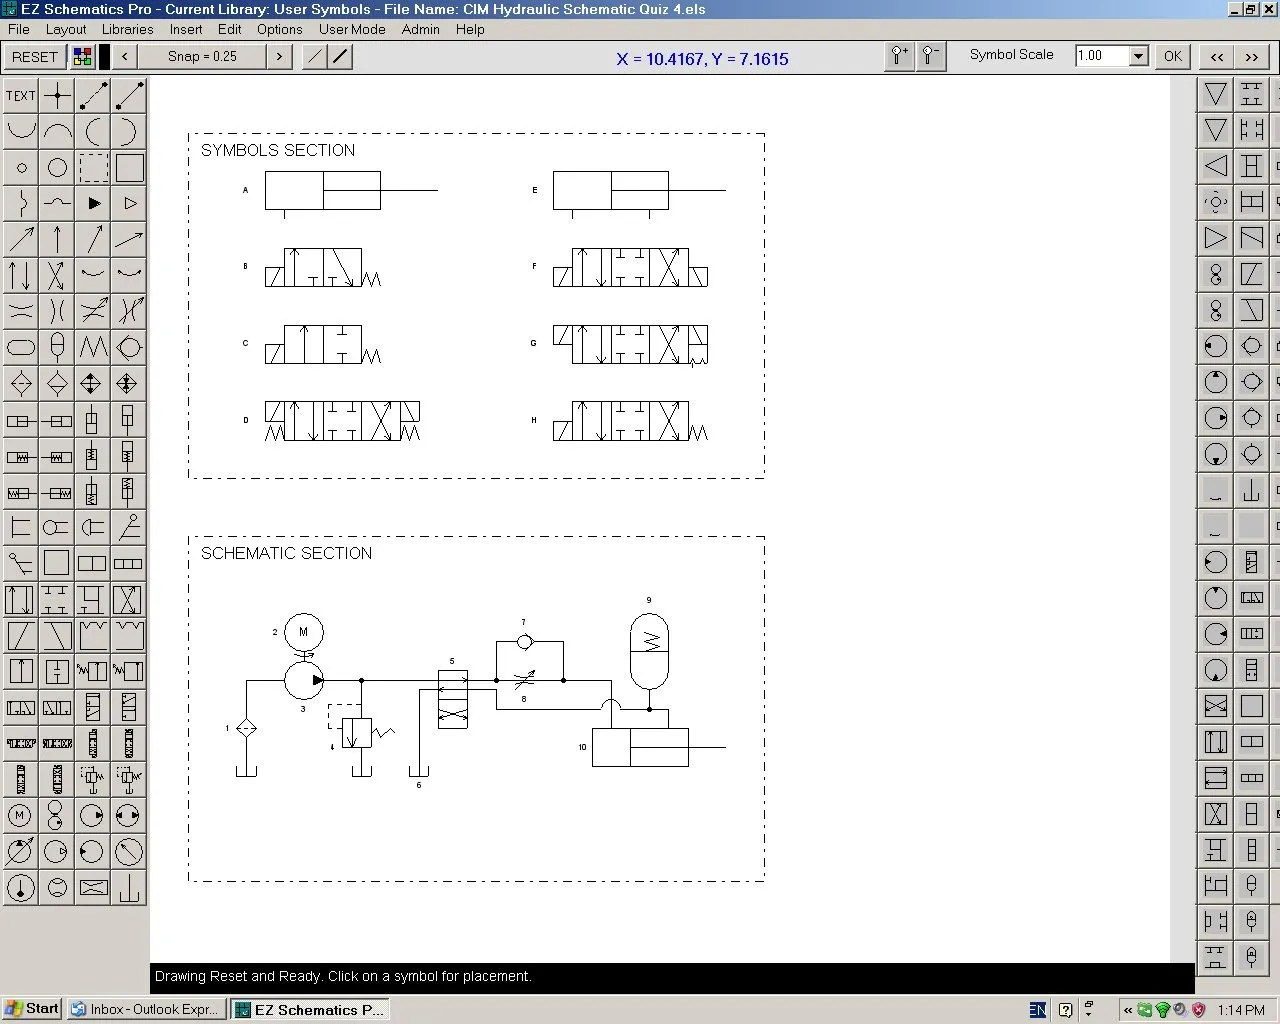 hight resolution of schematics maker screenshot 9 data schematic diagram professional electrical schematic diagrams maker schematics maker screenshot 9